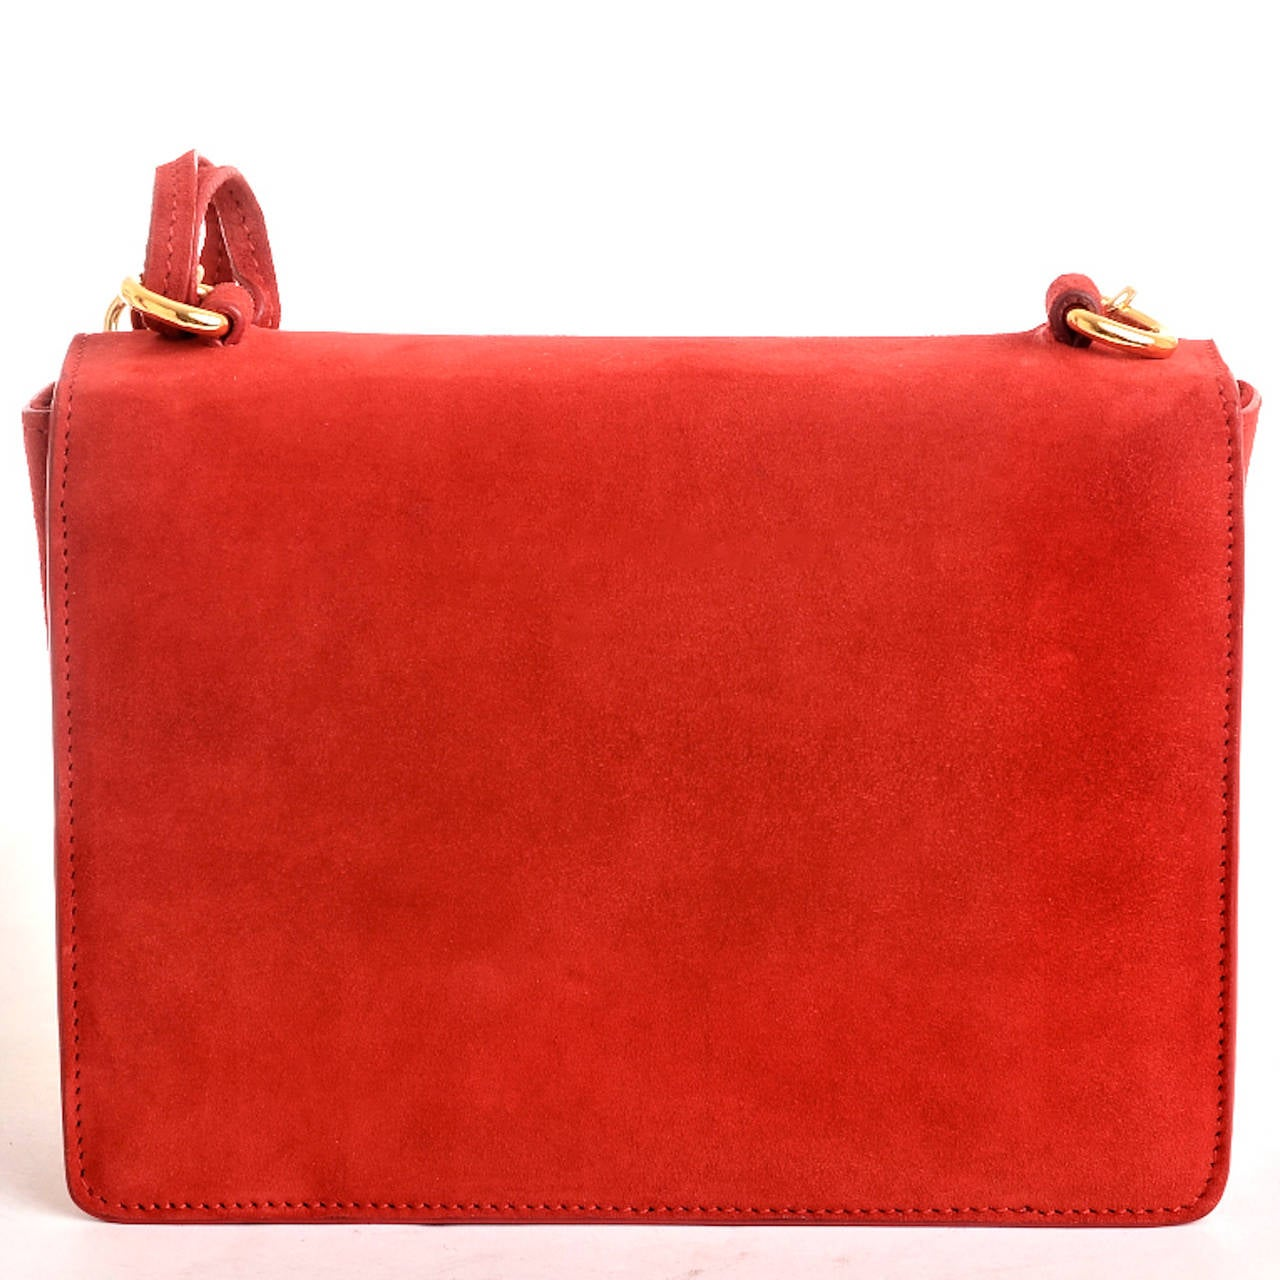 Ralph Lauren Red Suede Ricky Chain Bag In New never worn Condition For Sale In New York, NY